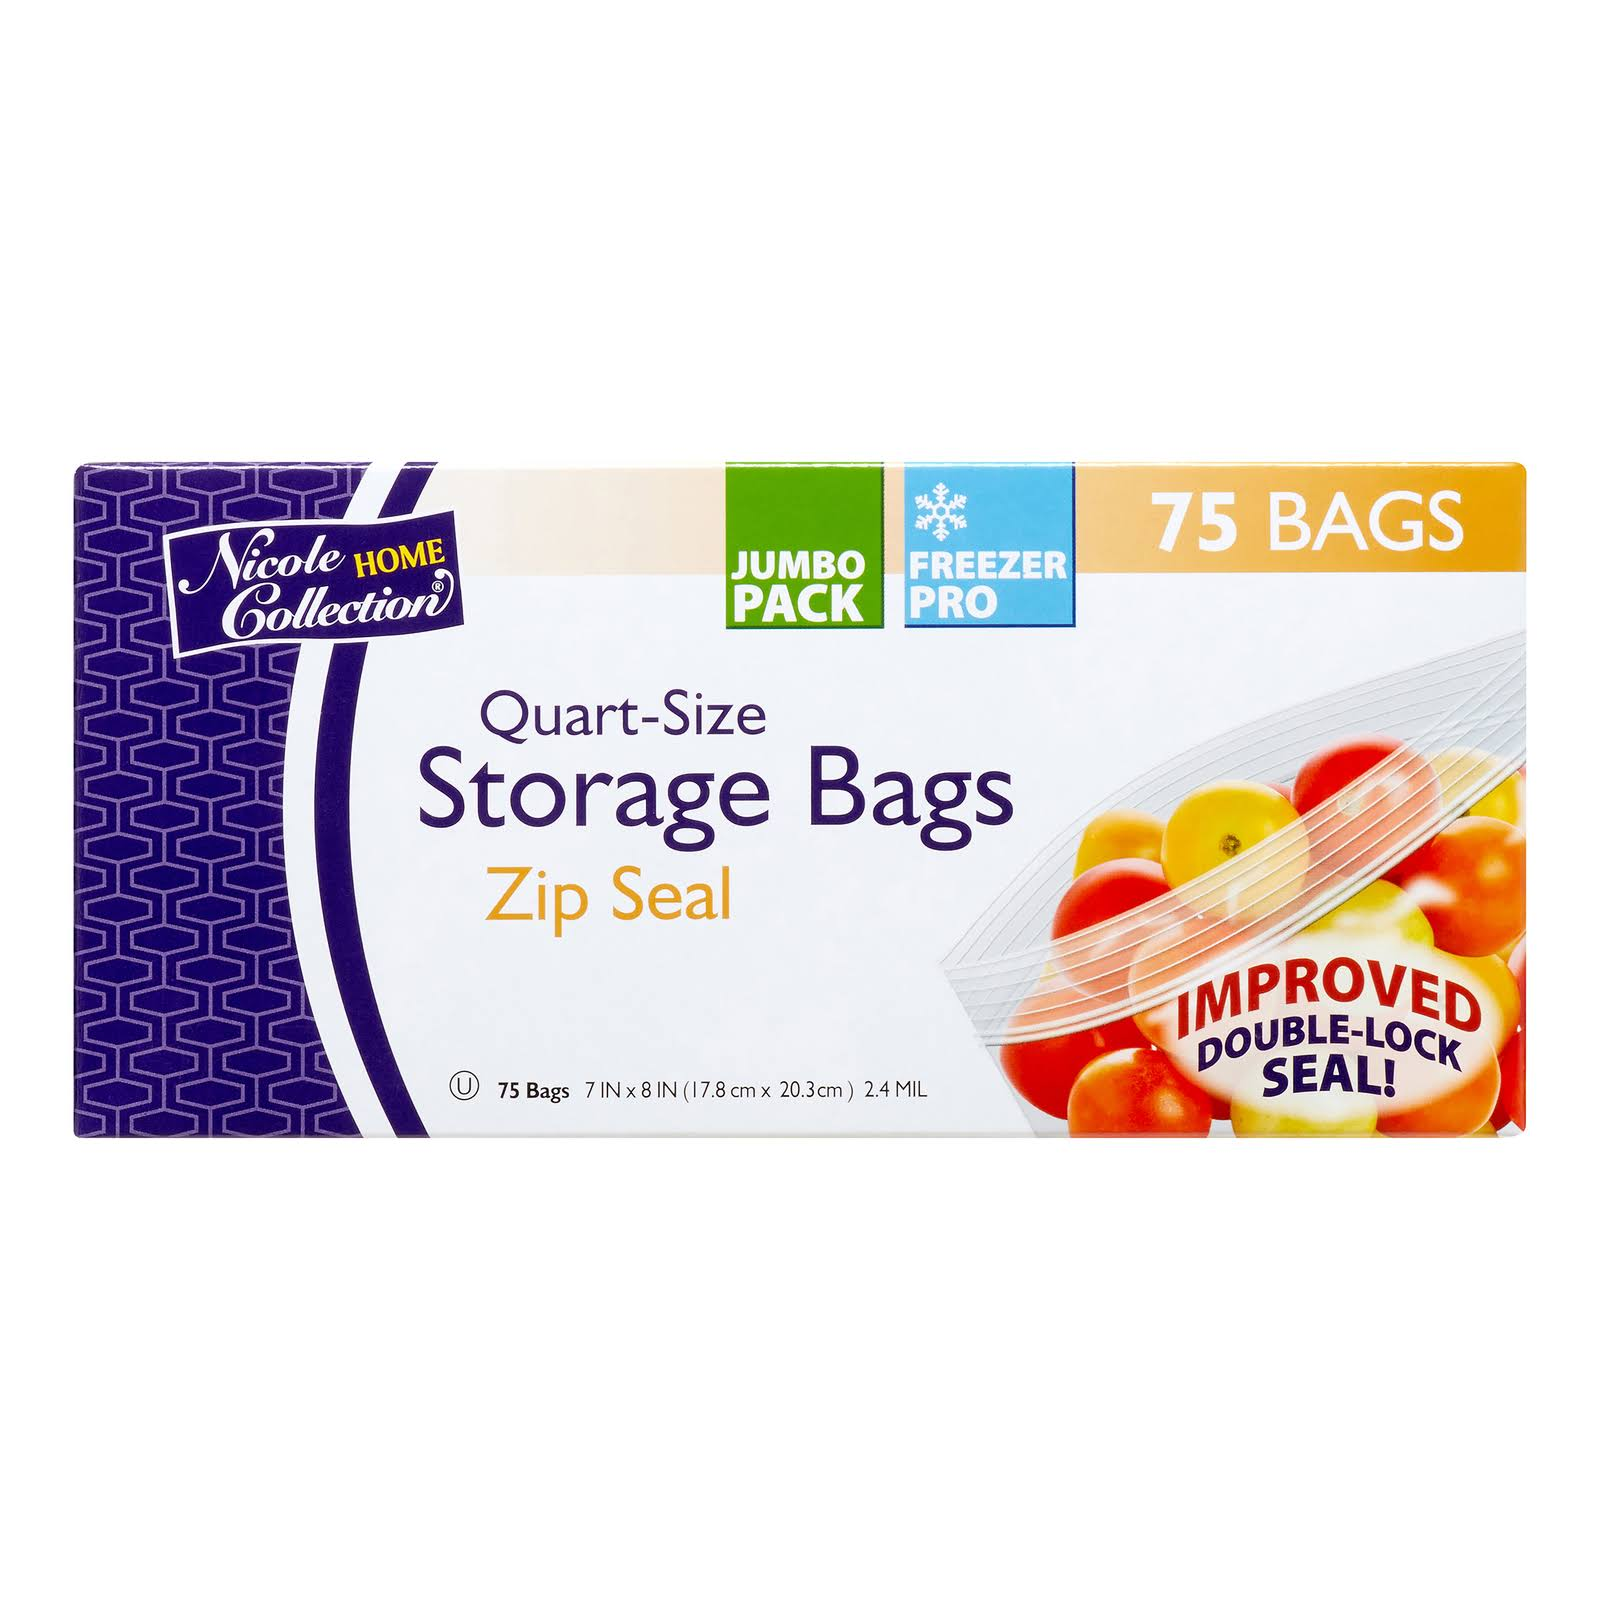 Nicole Home Collection Storage Bags Zip Seal - 75 Bags